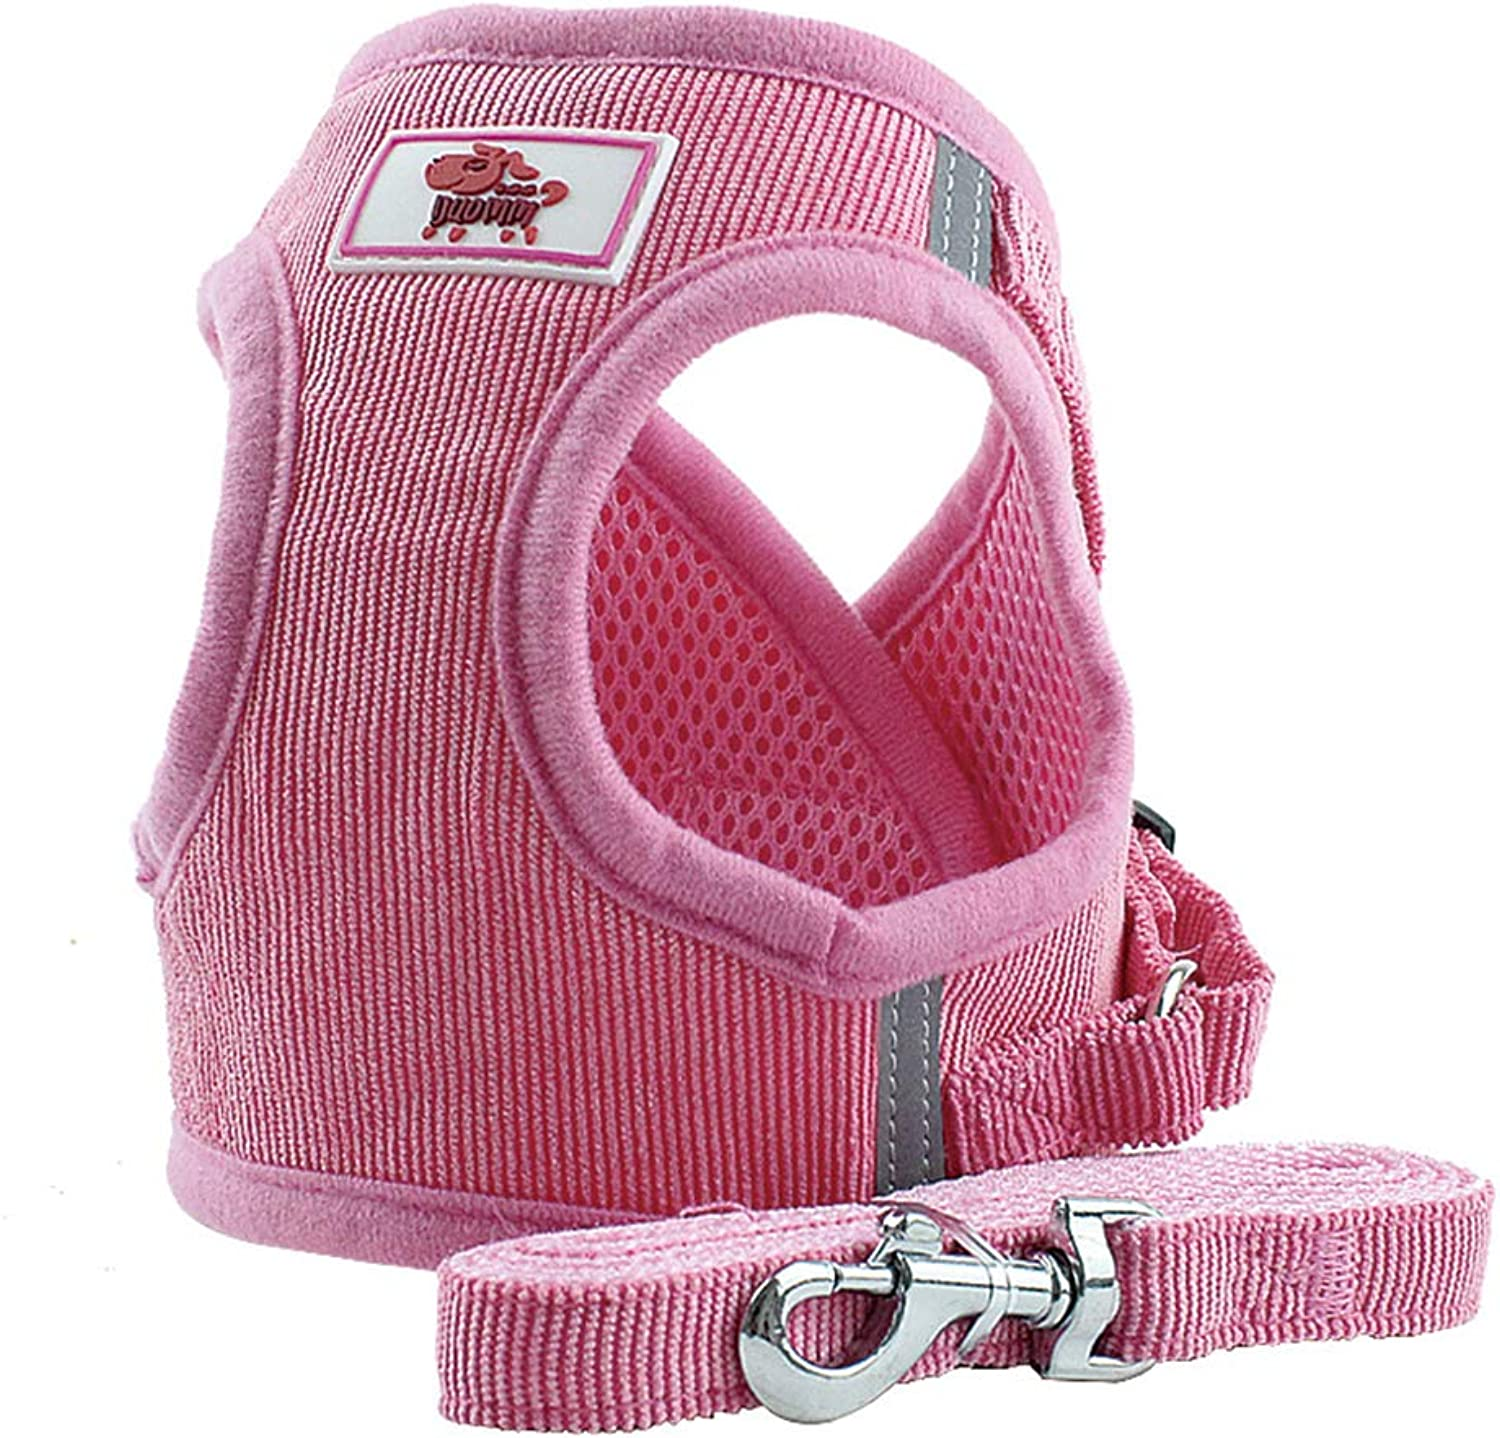 BBDOGO Puppy Vest Harness Breathable Corduroy Straps Pet Walking Harness Small Medium Dogs CW058 (S, Pink)